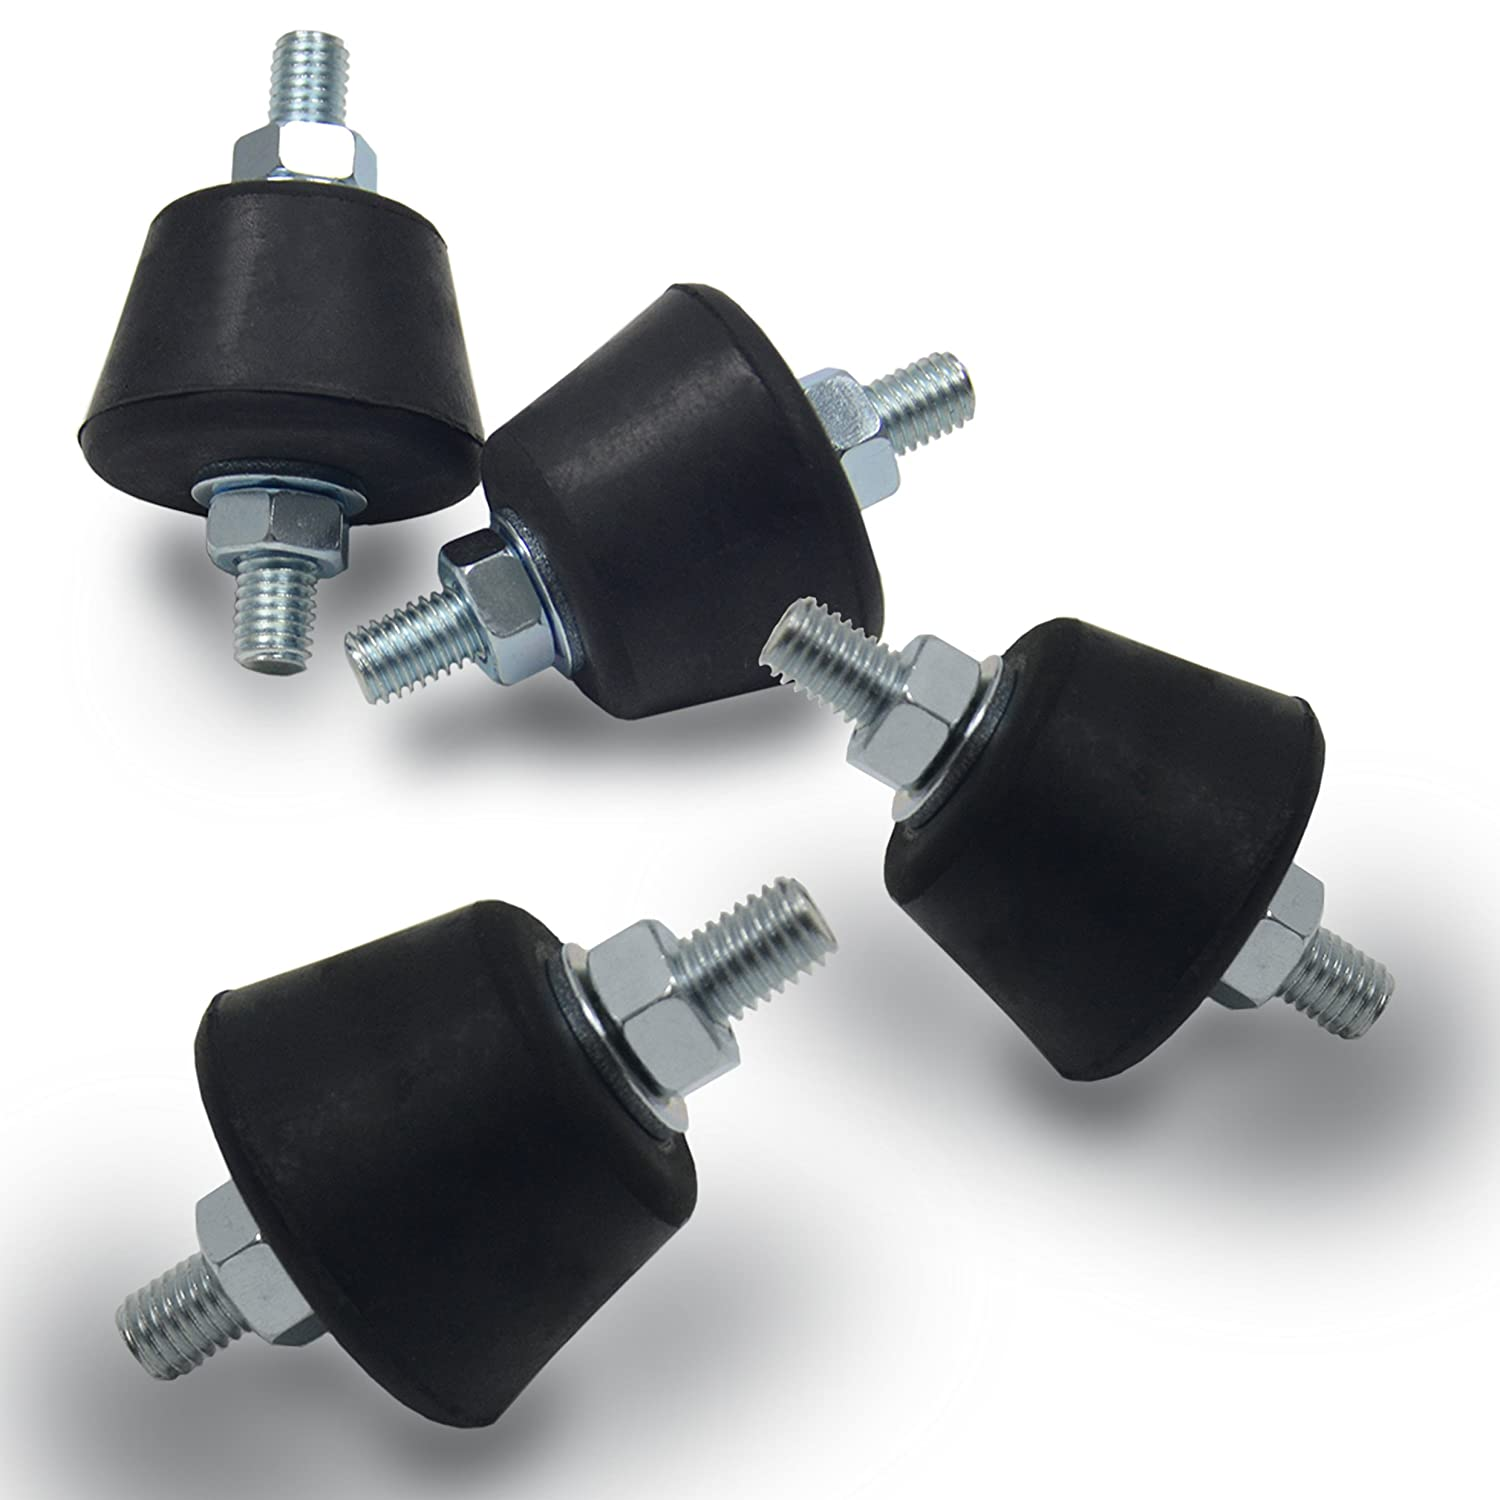 Anti Vibration Rubber Isolator Mounts with Studs Shock Absorber M8-1.25 Jeacent Innovations